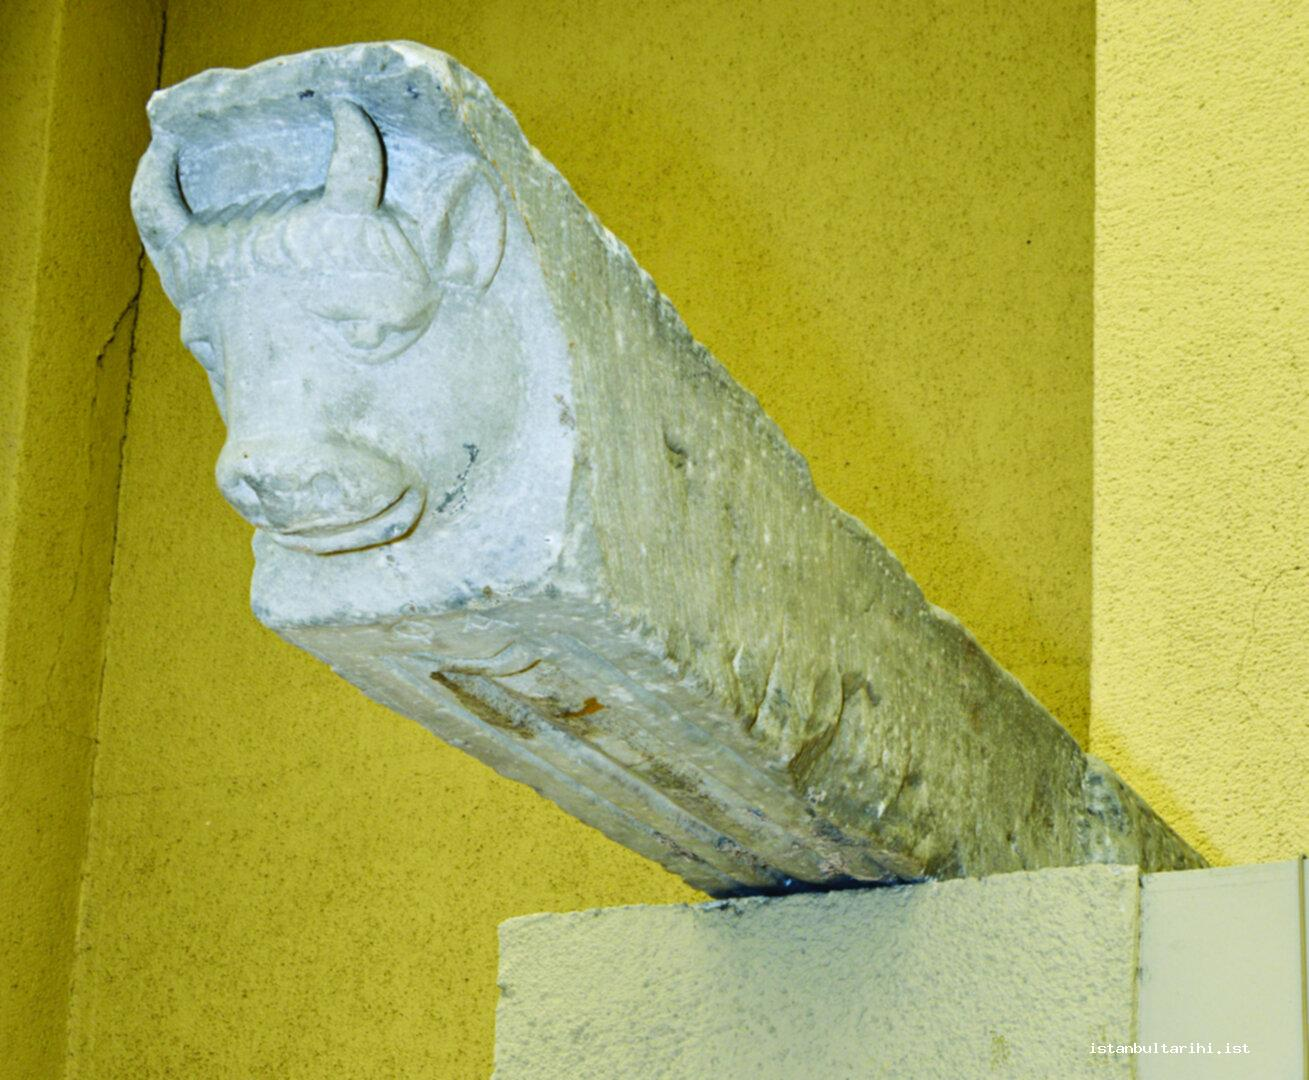 4- The bull-headed great overhang found in Saraçhane excavations (5<sup>th</sup> – 6<sup>th</sup> Centuries) (Istanbul Archeology Museum)